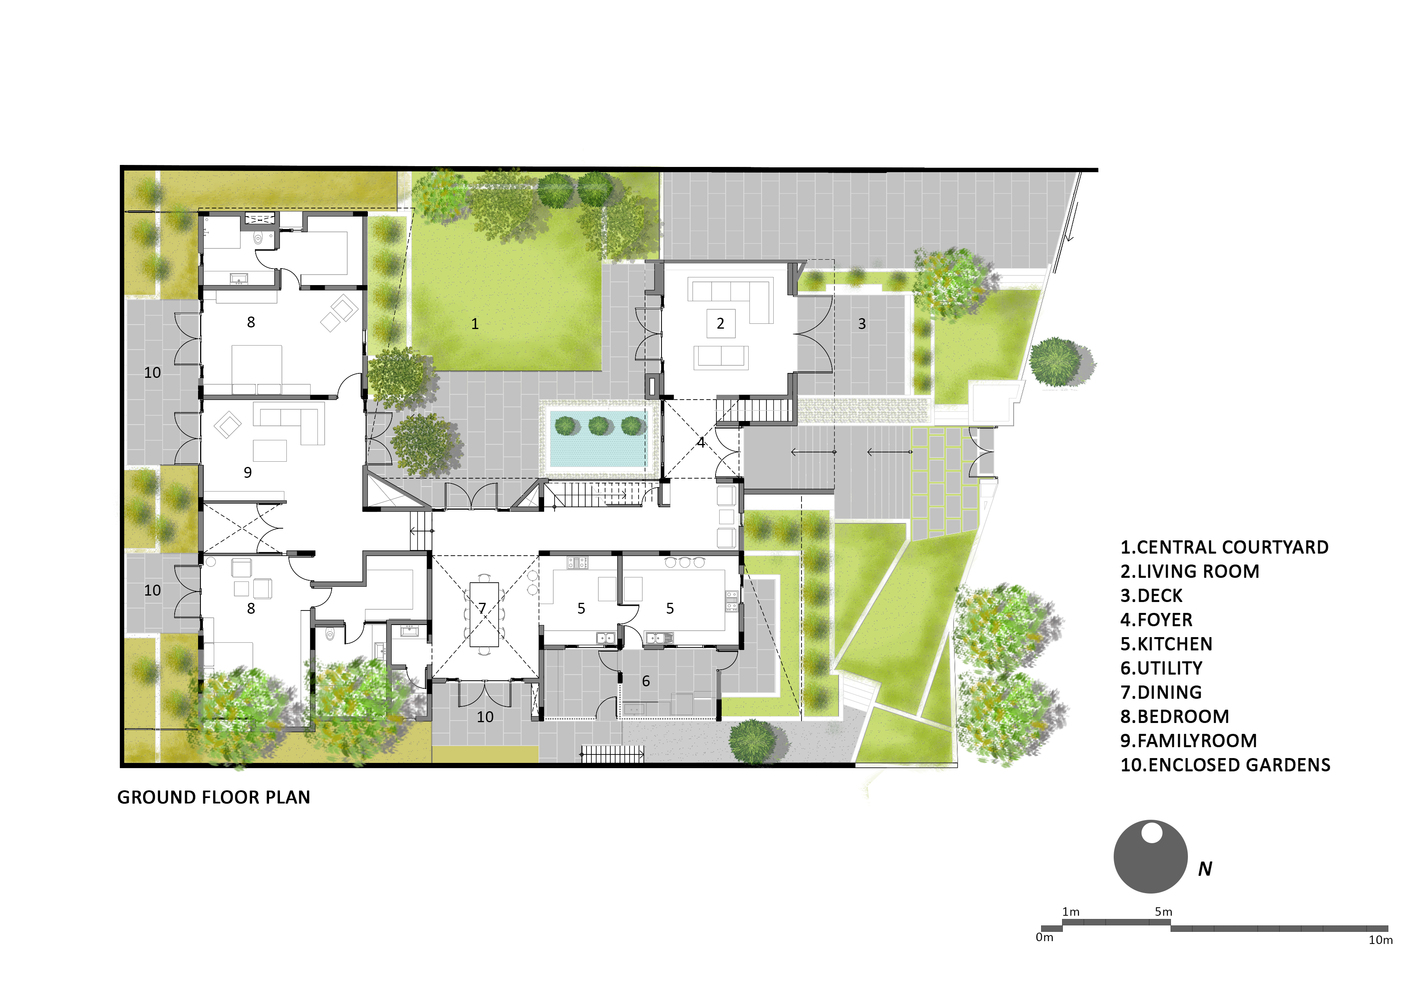 Courtyard houseground floor plan